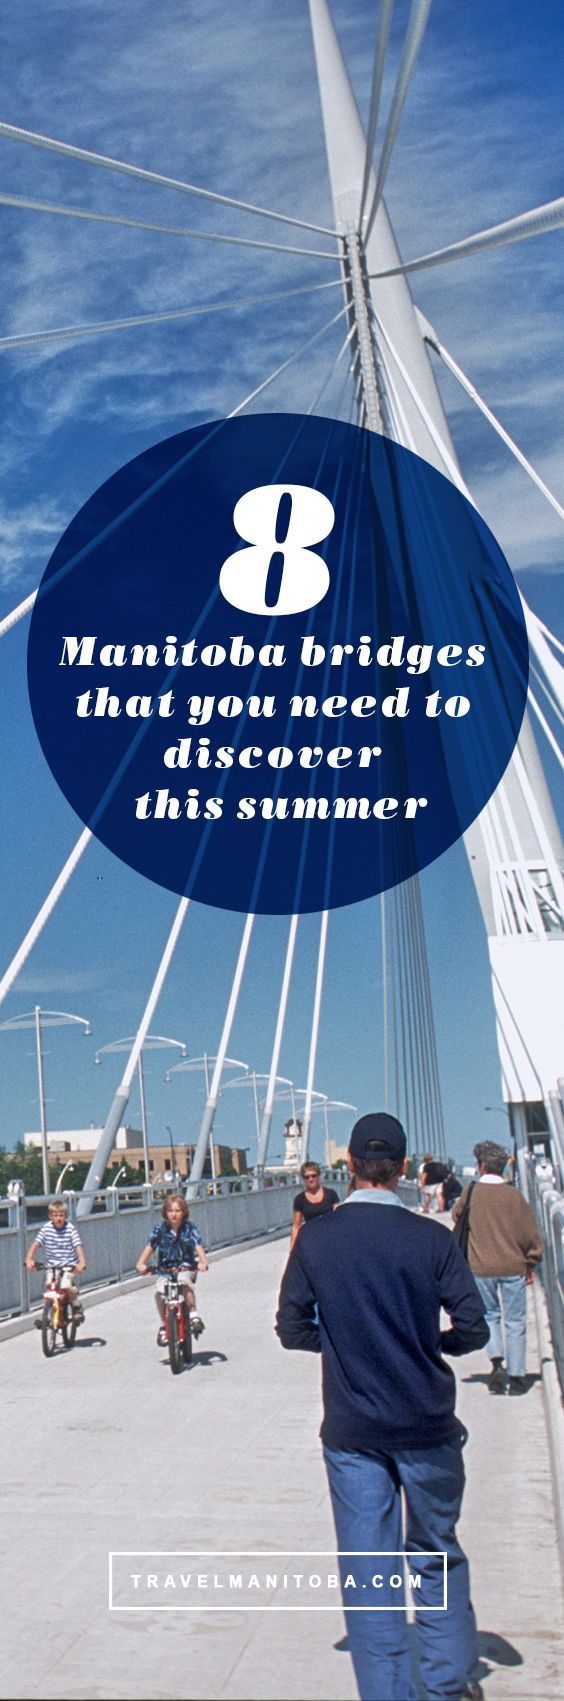 Find that bridge and cross in! Embark on a summer road trip